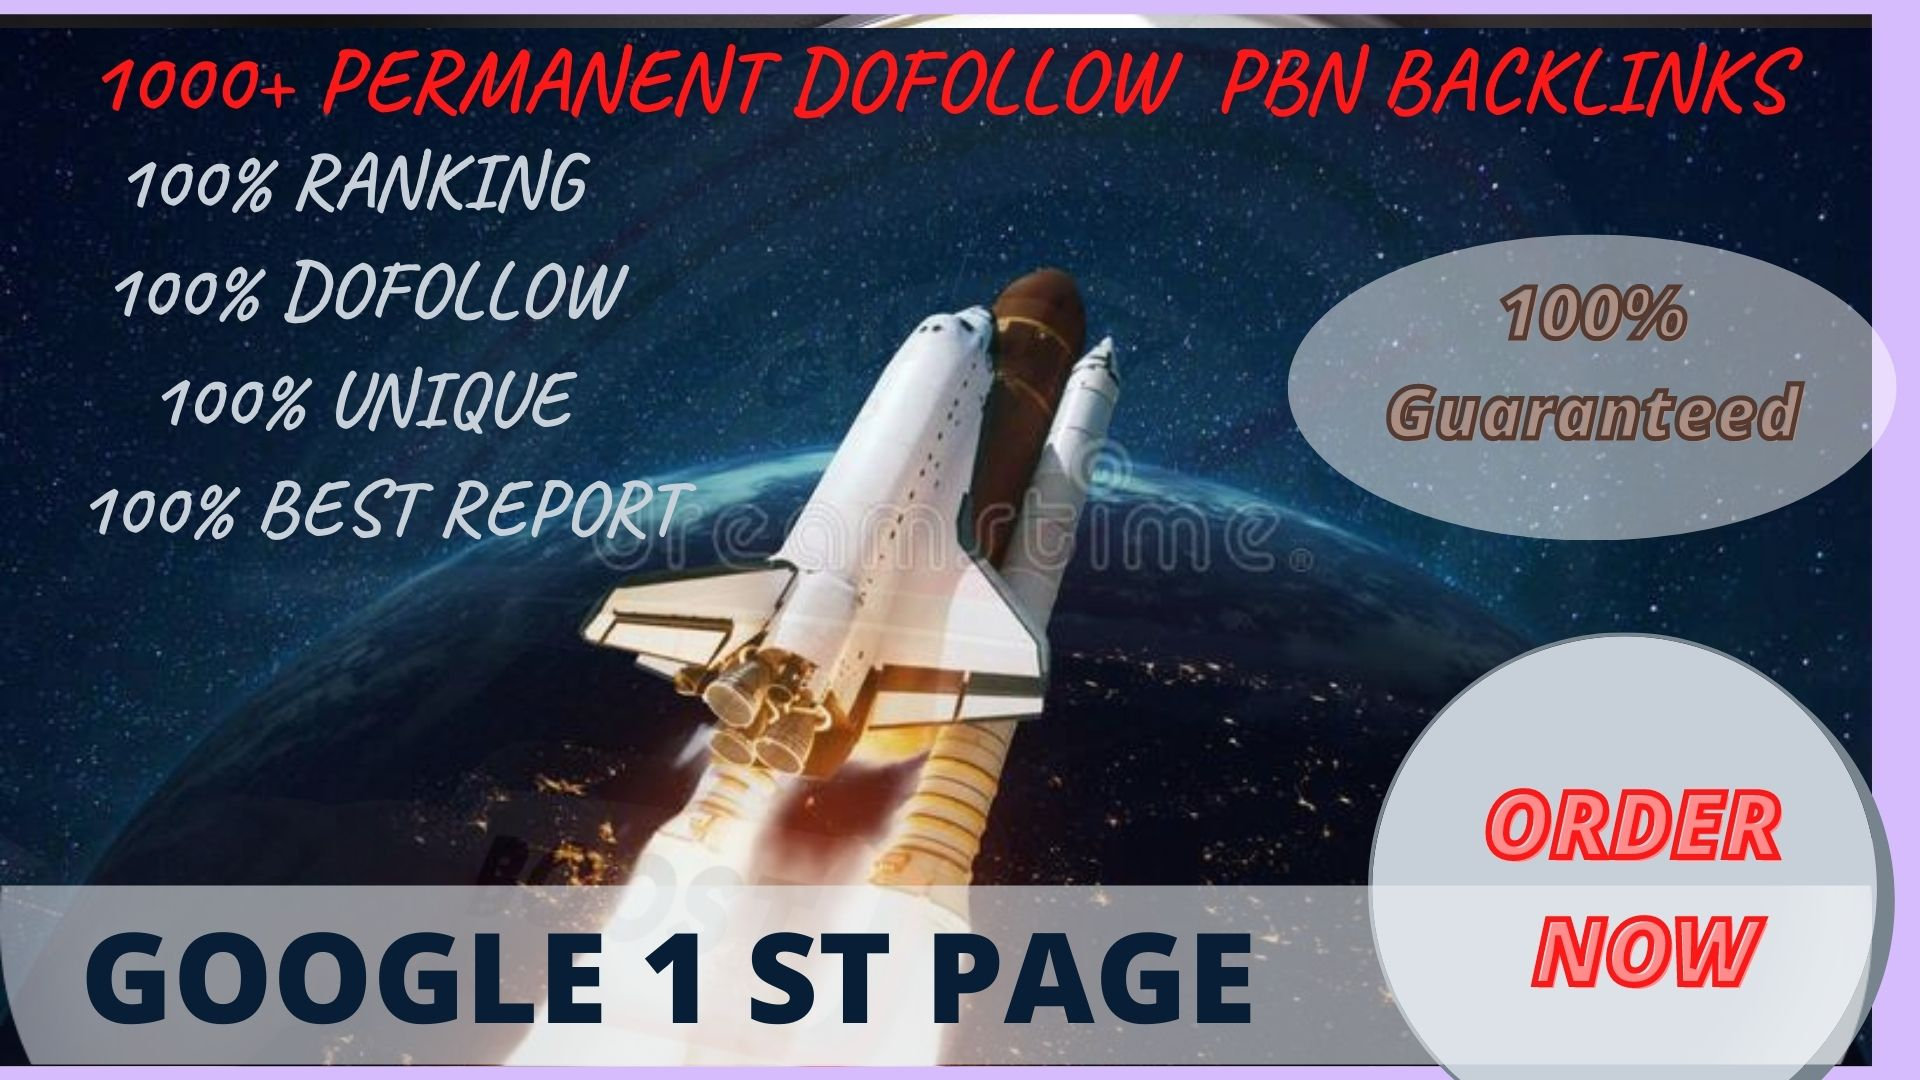 Get 1000+ Permanent Dofollow Homepage pbn Backlinks.